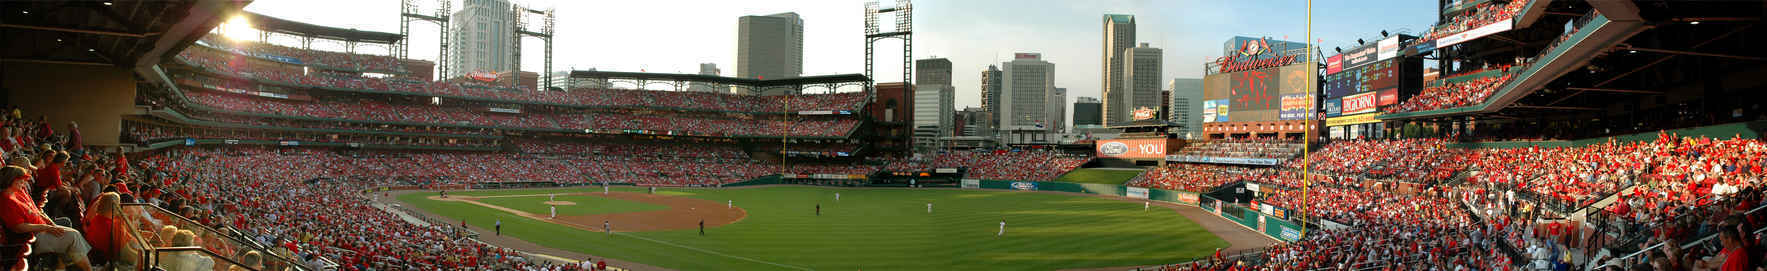 Win 4 Green Seats for the 6/4/19 Cardinals game! image